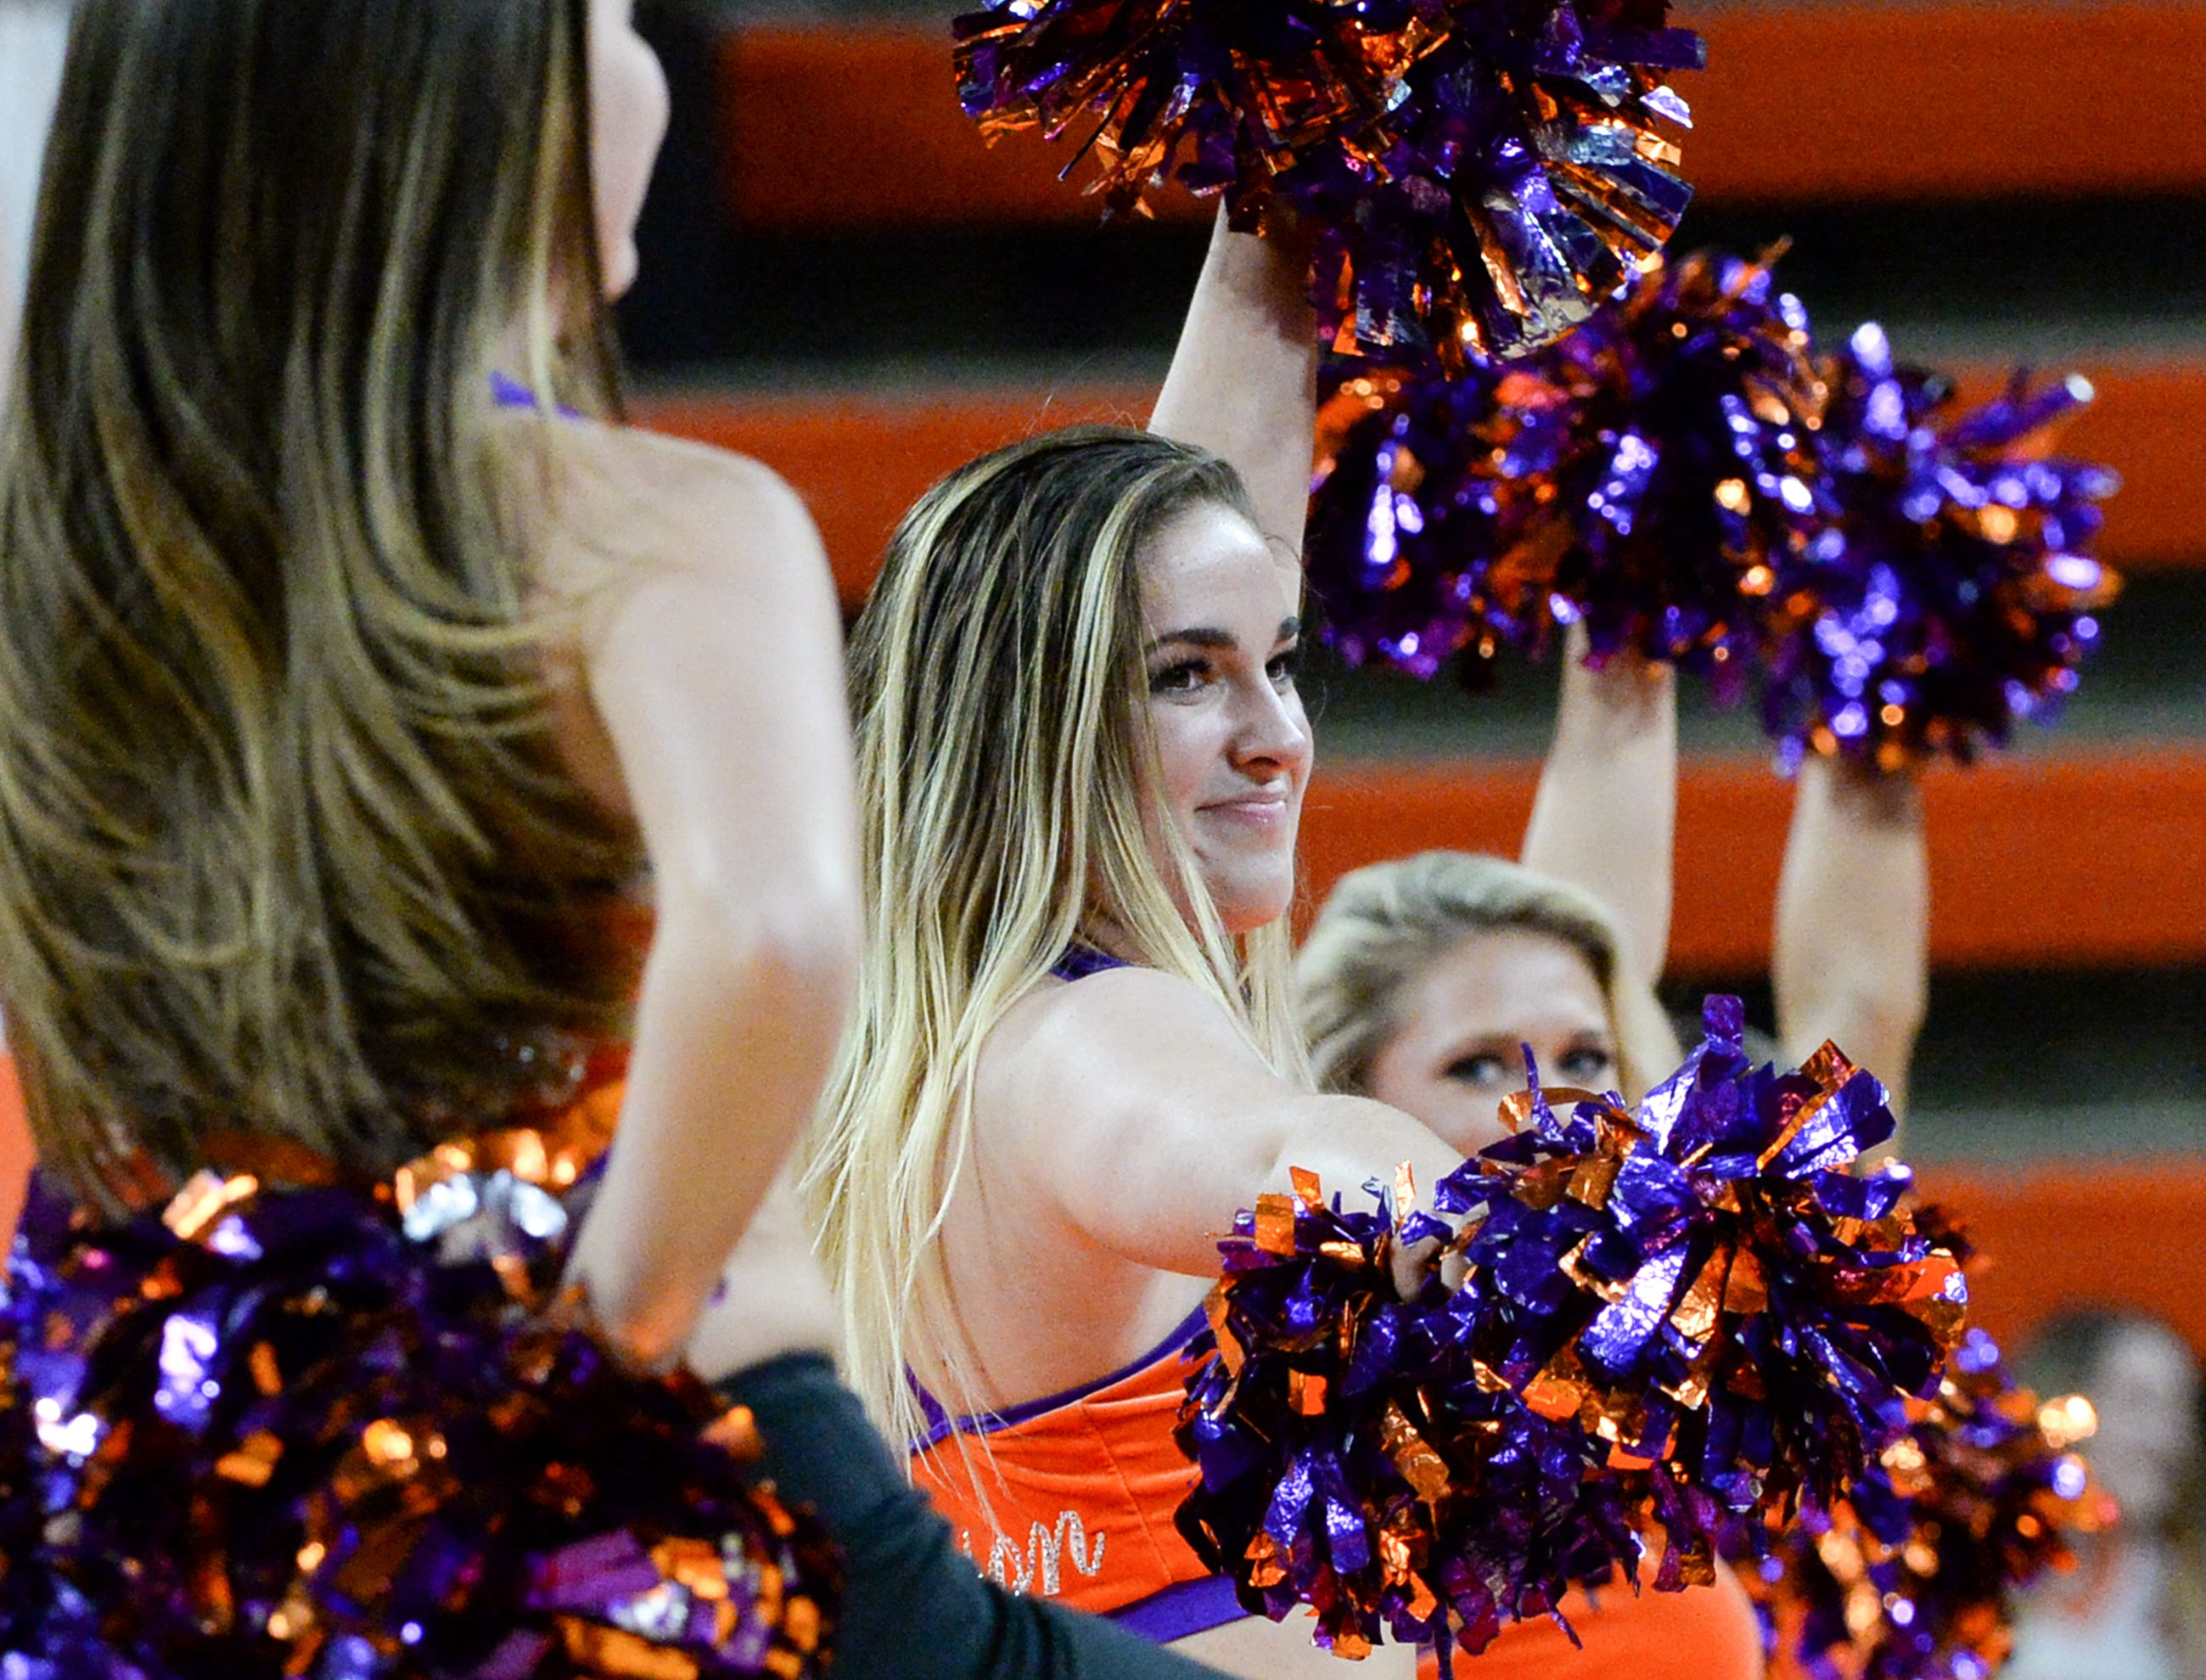 Clemson Rally Cats during the second half of the NIT at Littlejohn Coliseum in Clemson Tuesday, March 19, 2019.